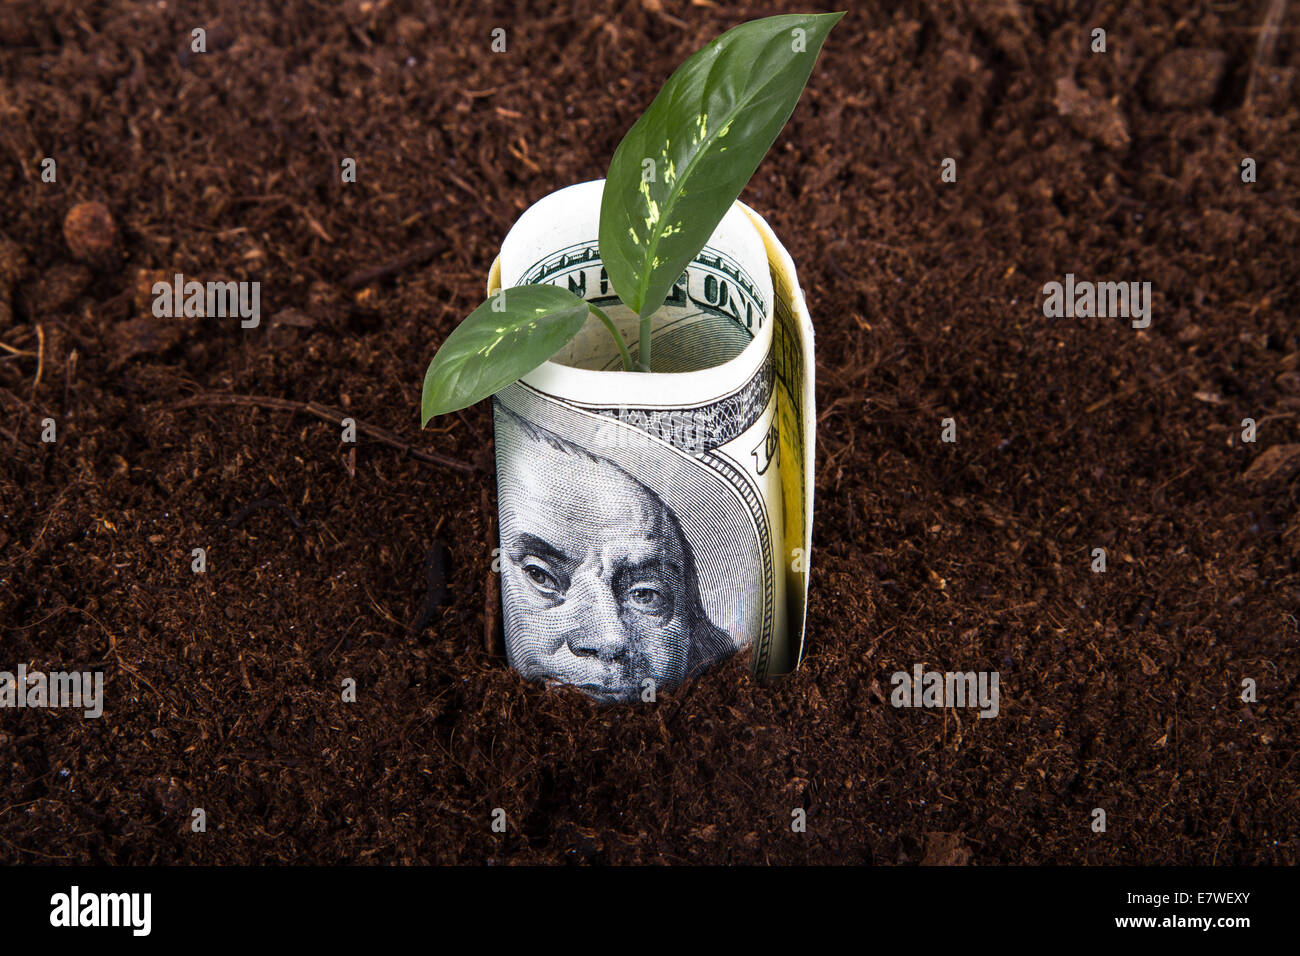 One hundred dollar bill money growing in soil with green plant leaves. - Stock Image